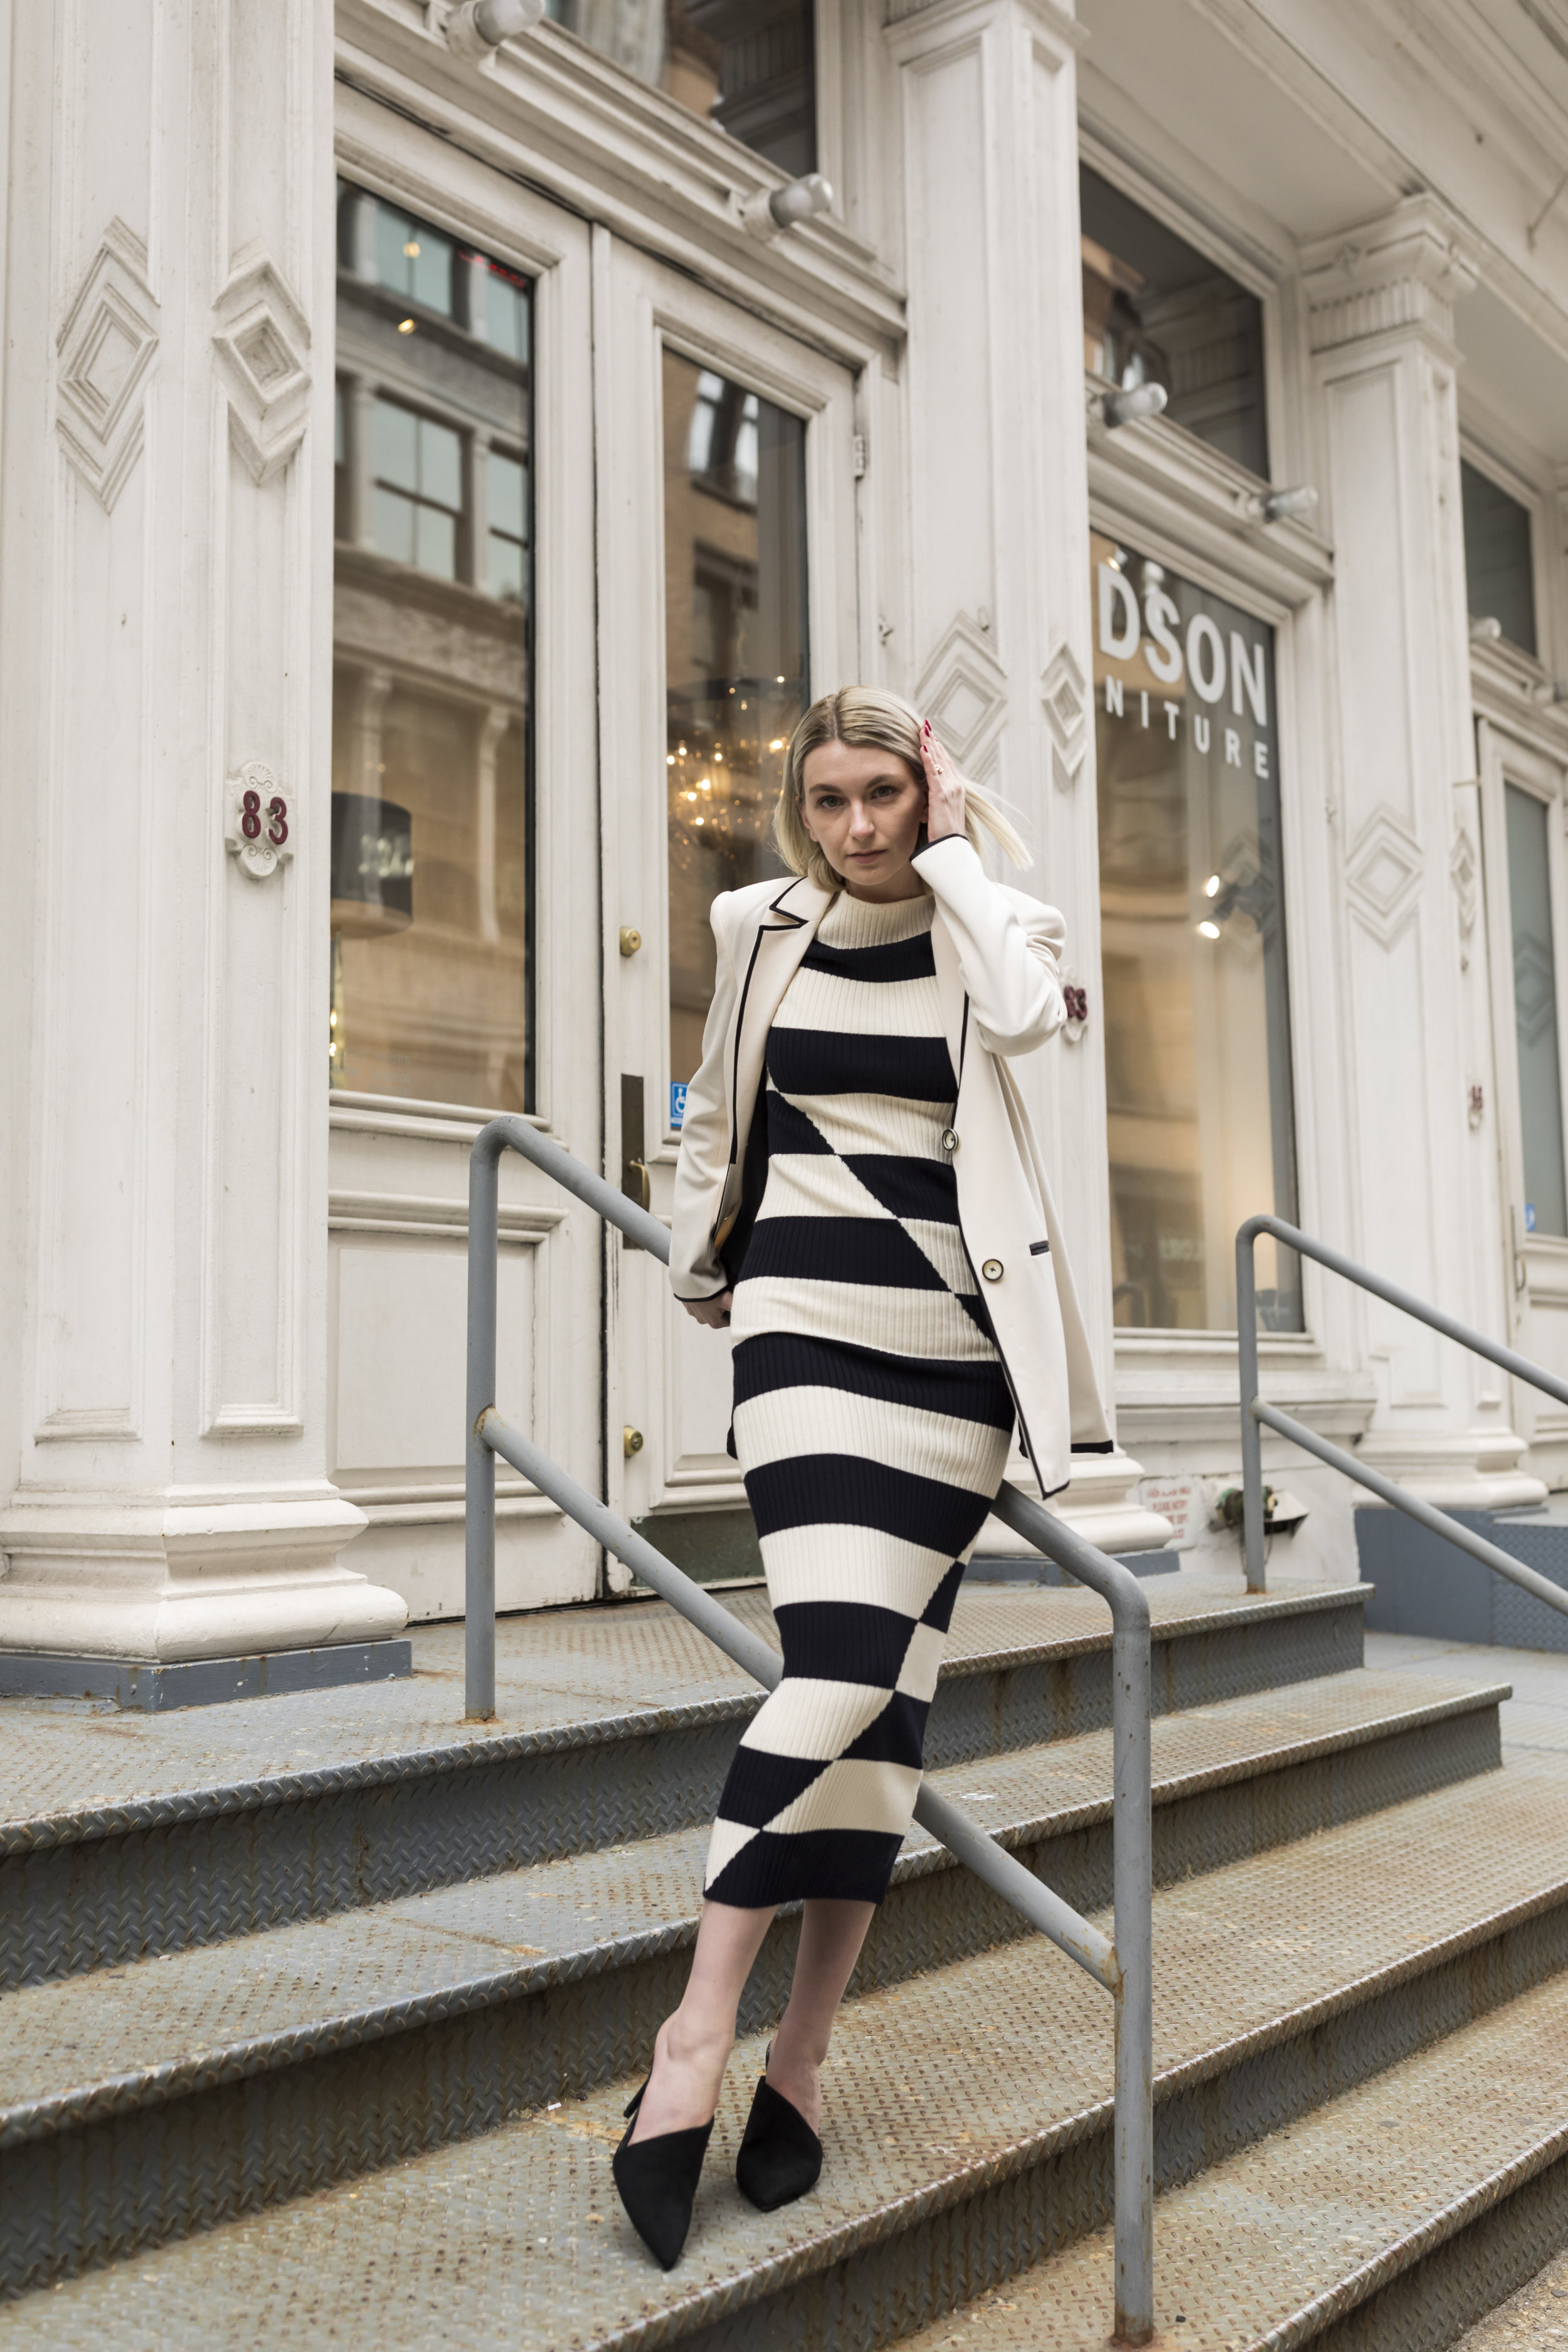 Madison,  @madisonrussellx , looked beautiful in Donna's Fall '19 collection striped dress. We love the monochrome color scheme with the clean, white jacket and black heels.